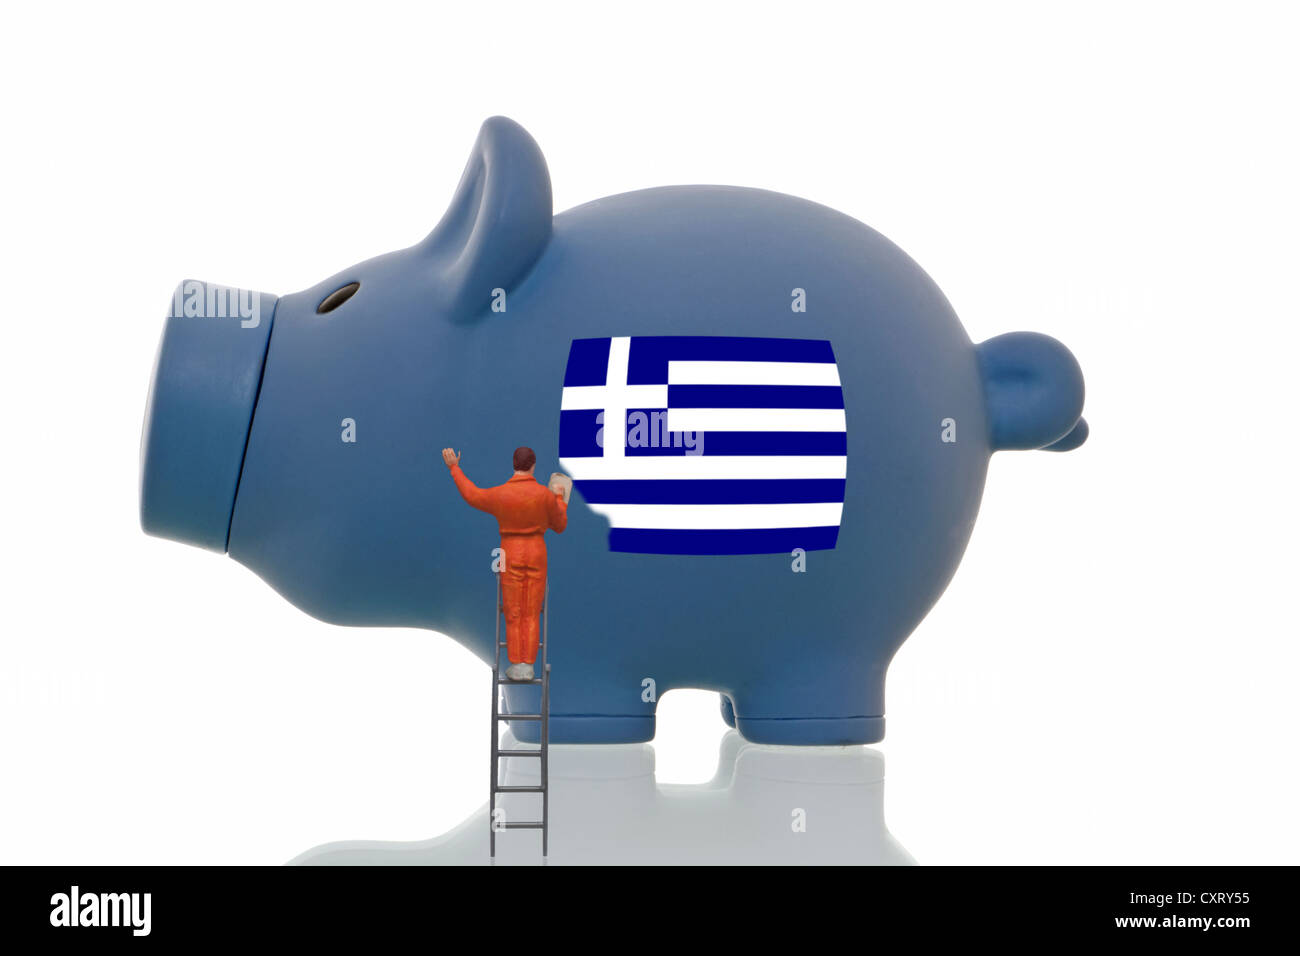 Miniature figurine painting over a Greek national flag on a blue piggy bank, symbolic image - Stock Image